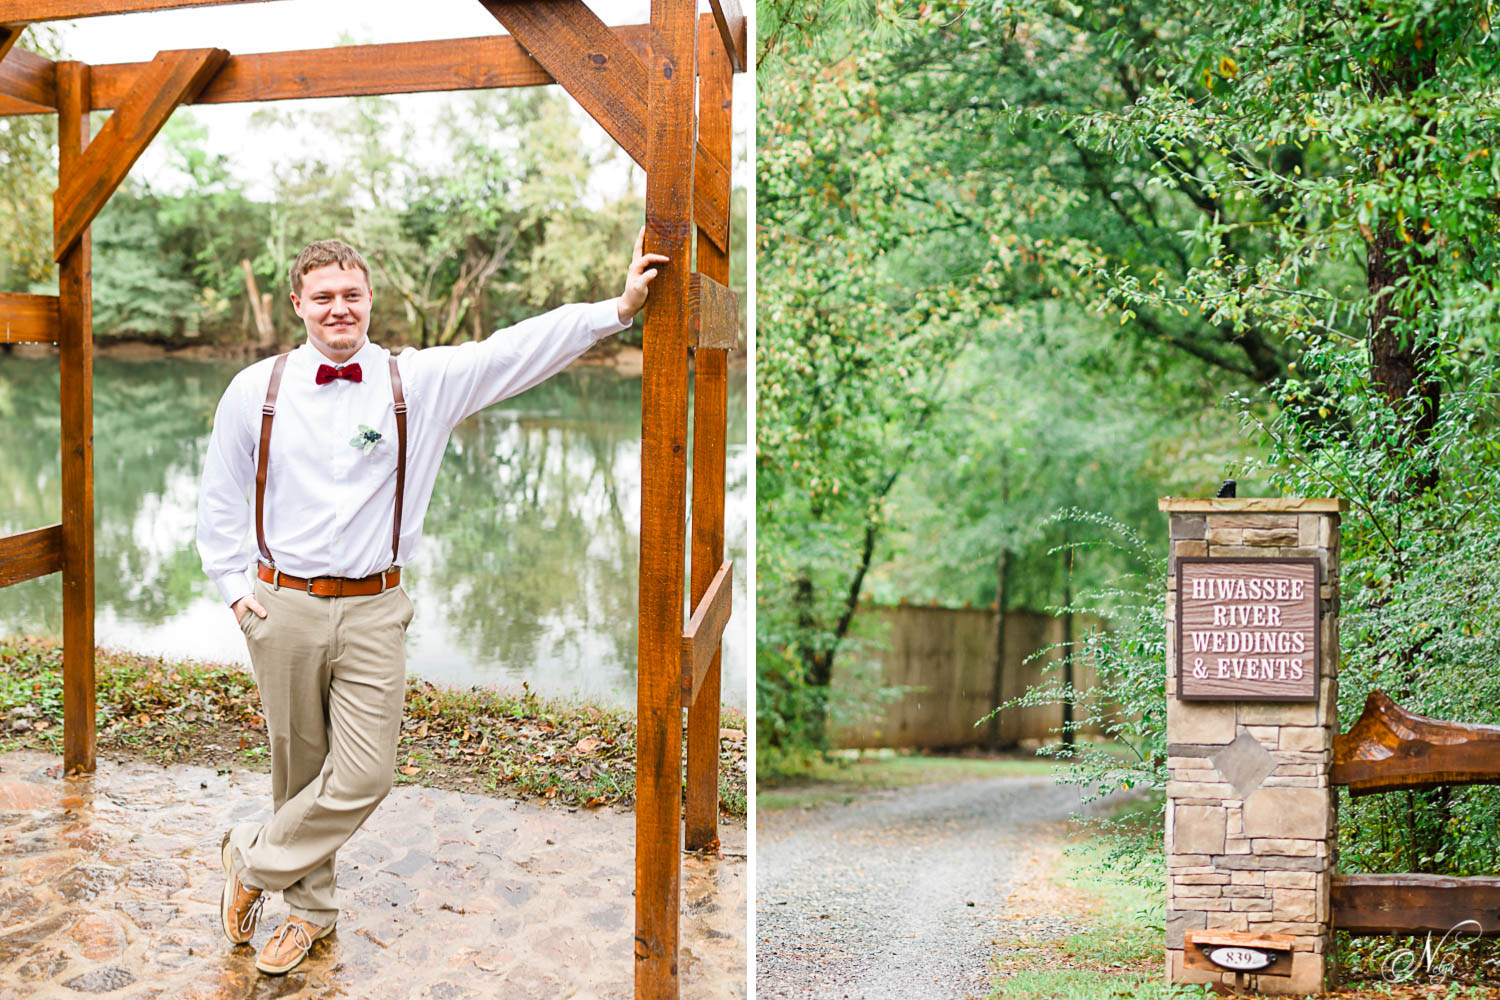 one guy outside leaning on wedding arbor. And entraance road to Hiwassee River Weddings and sign on stone gate pillar.